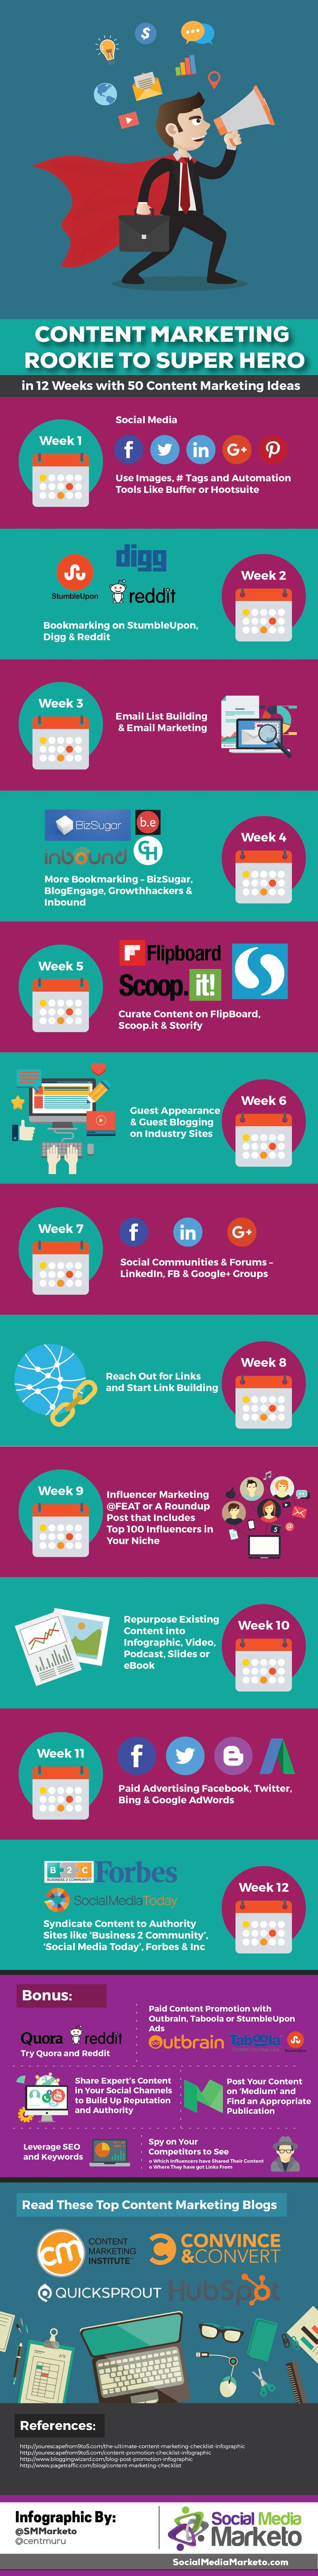 content-marketing-rookie-to-super-hero-in-12-weeks-infographic-image